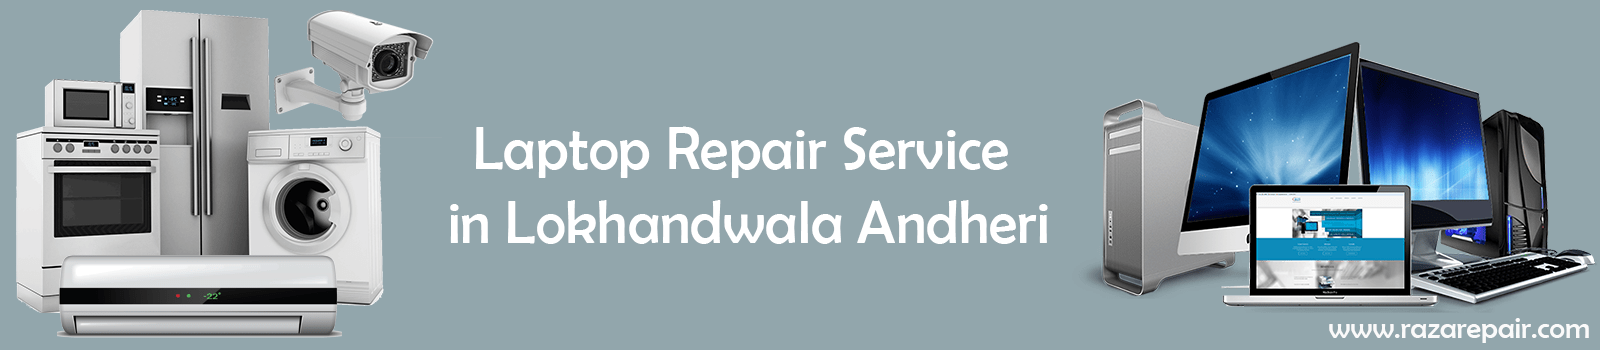 Laptop Repair Service in Lokhandwala Andheri | Call Now 8655112626